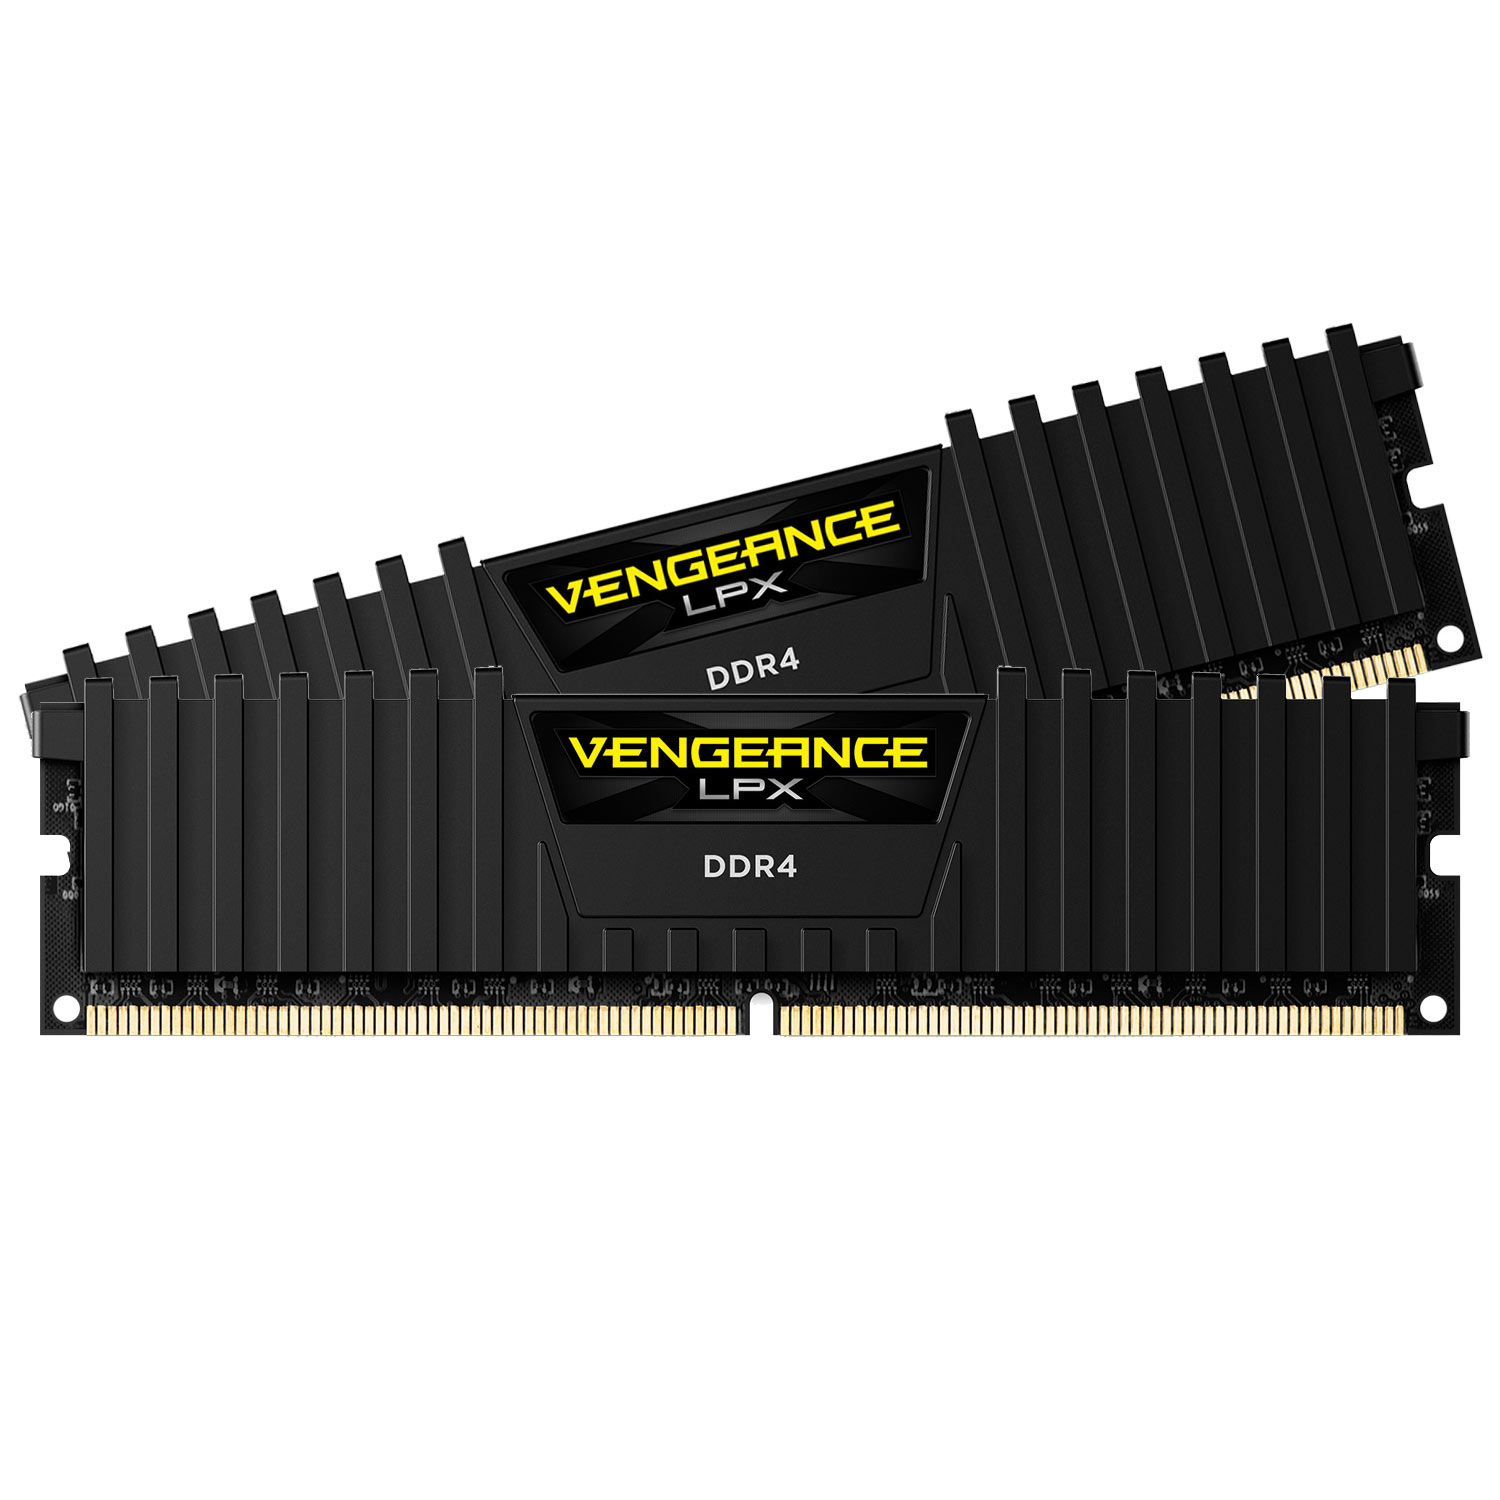 Ram Corsair DDR4 (2 X 4GB) 8G bus 2400 - CMK8GX4M2